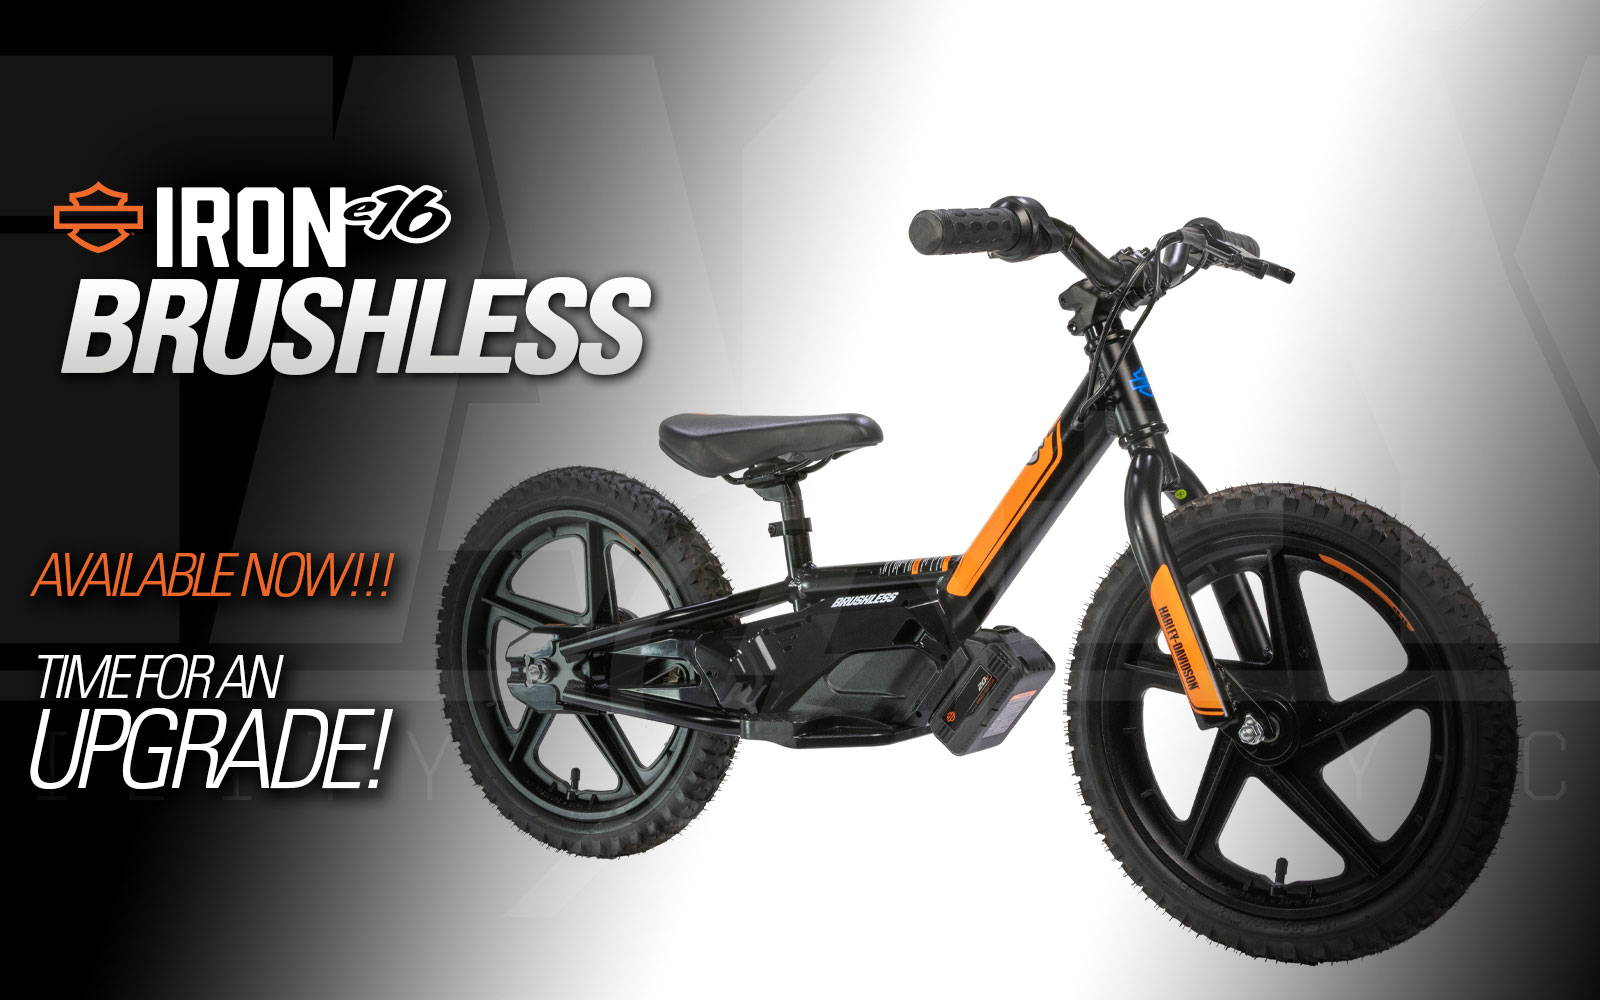 H-D IRONe16 Brushless